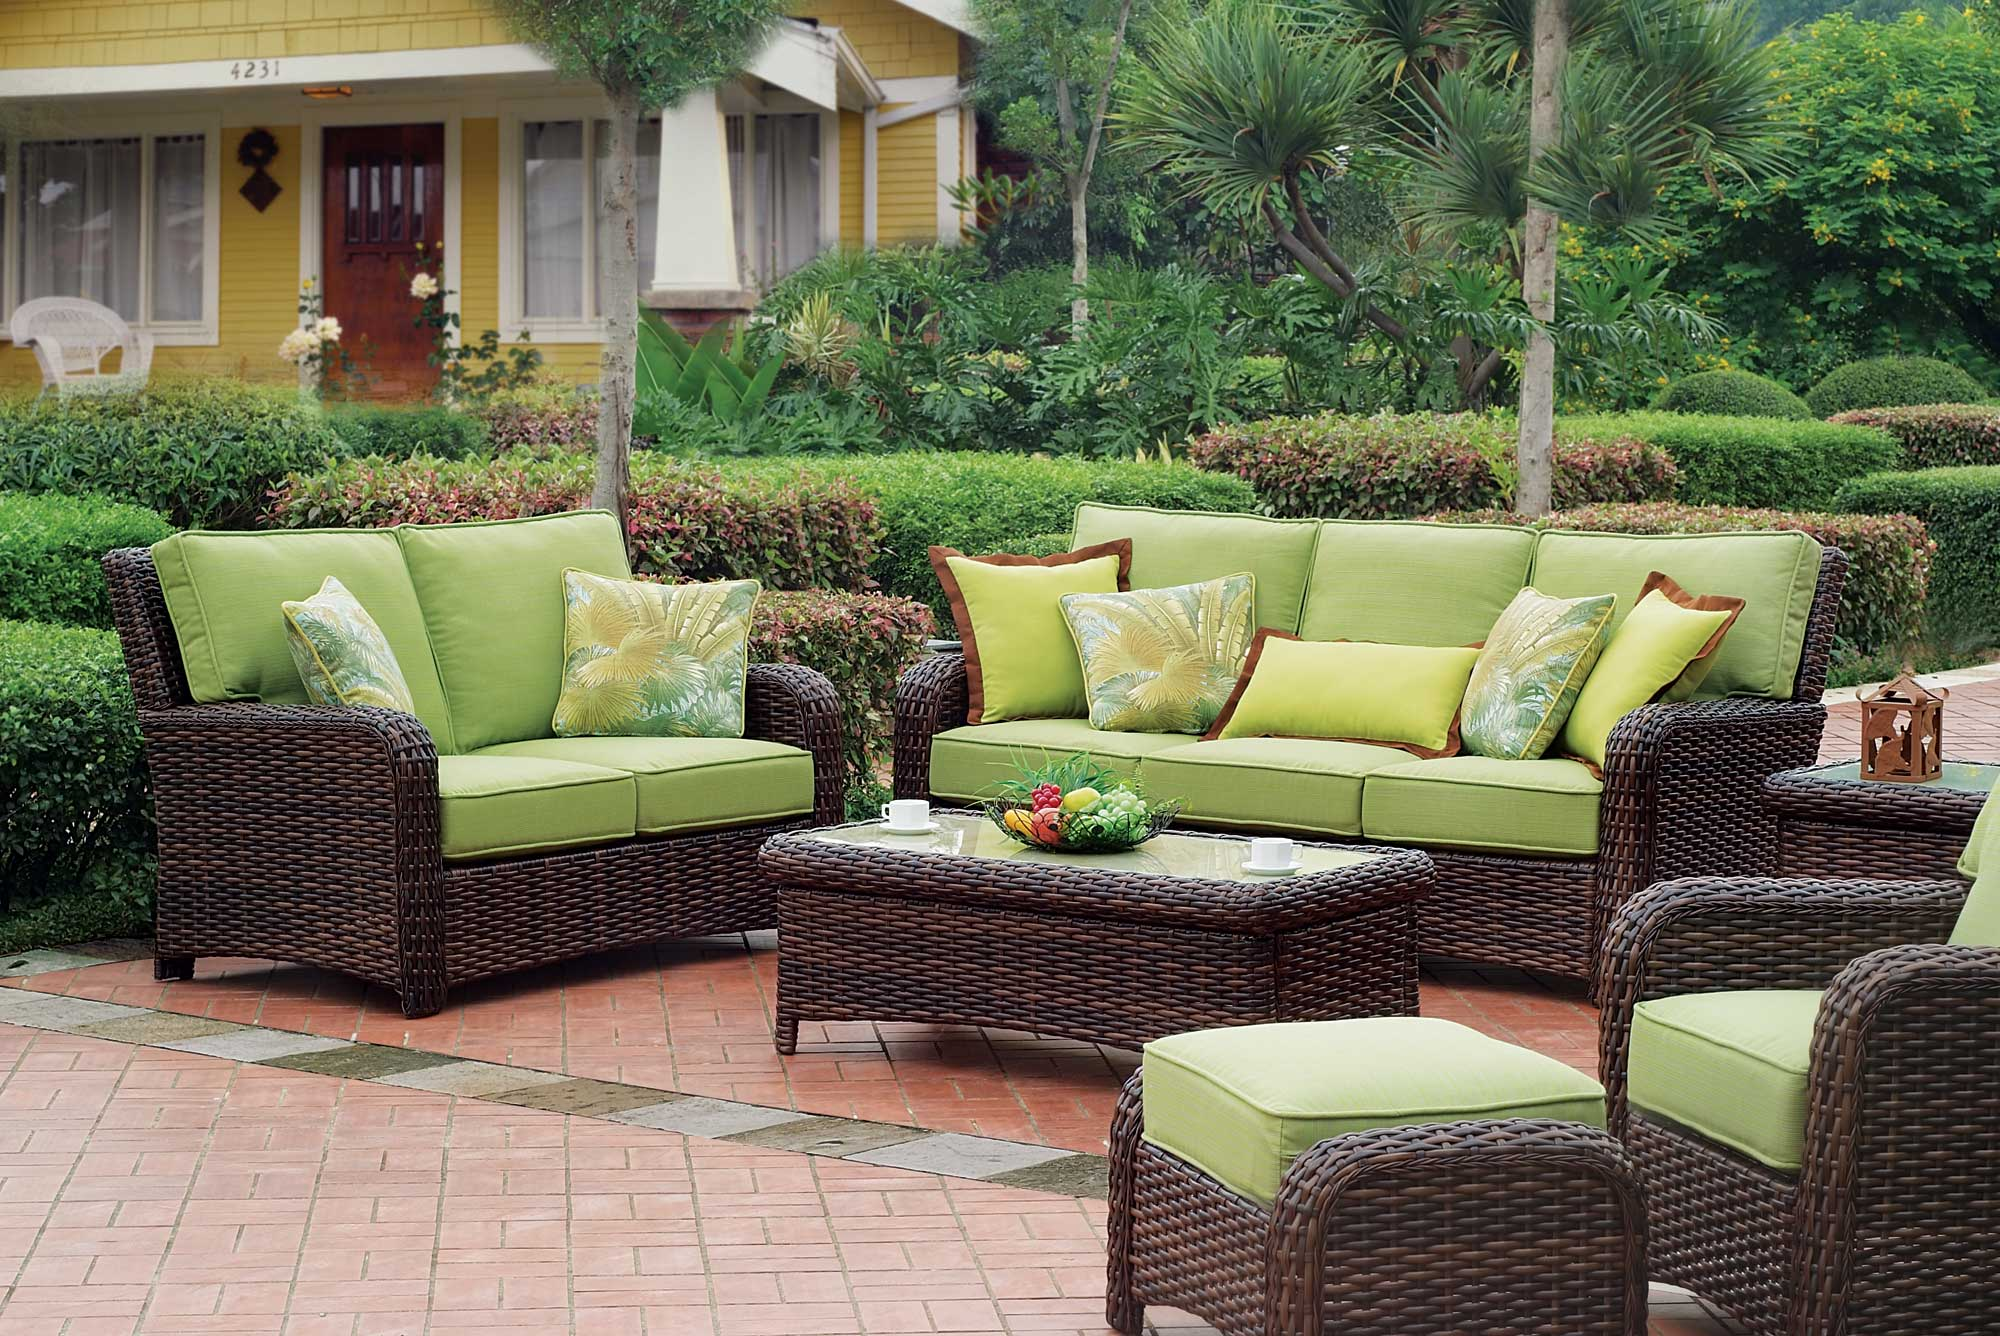 Garden Furniture Sets 3 rattan garden furniture classics for an evergreen look